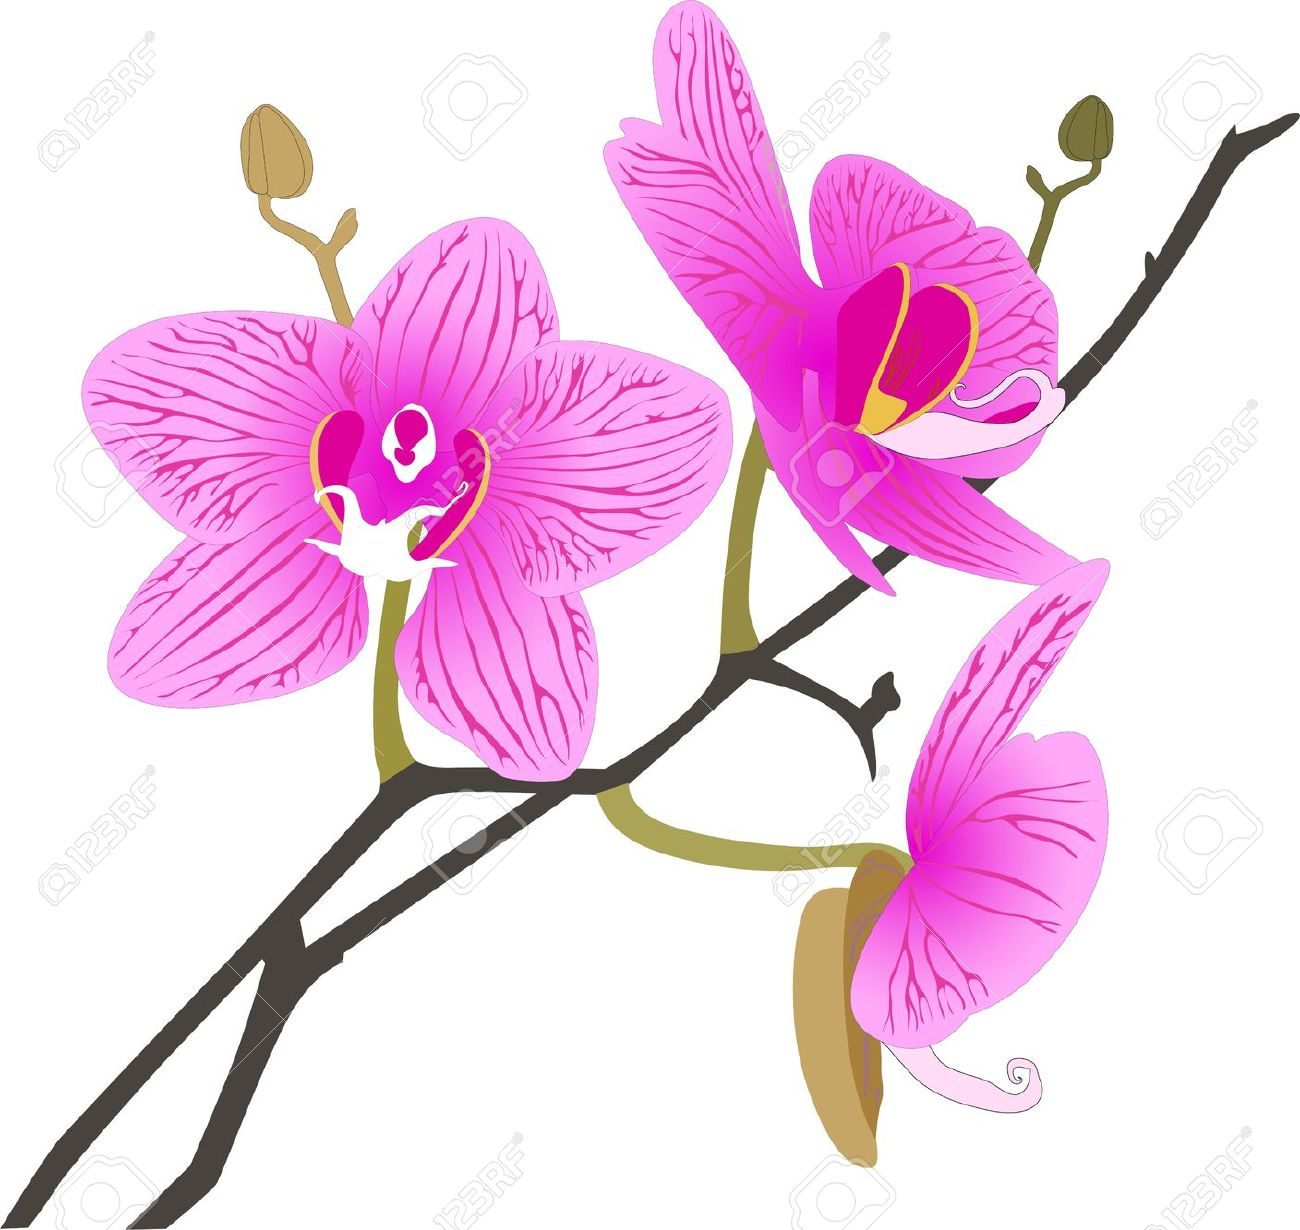 Orchids clipart - Clipground